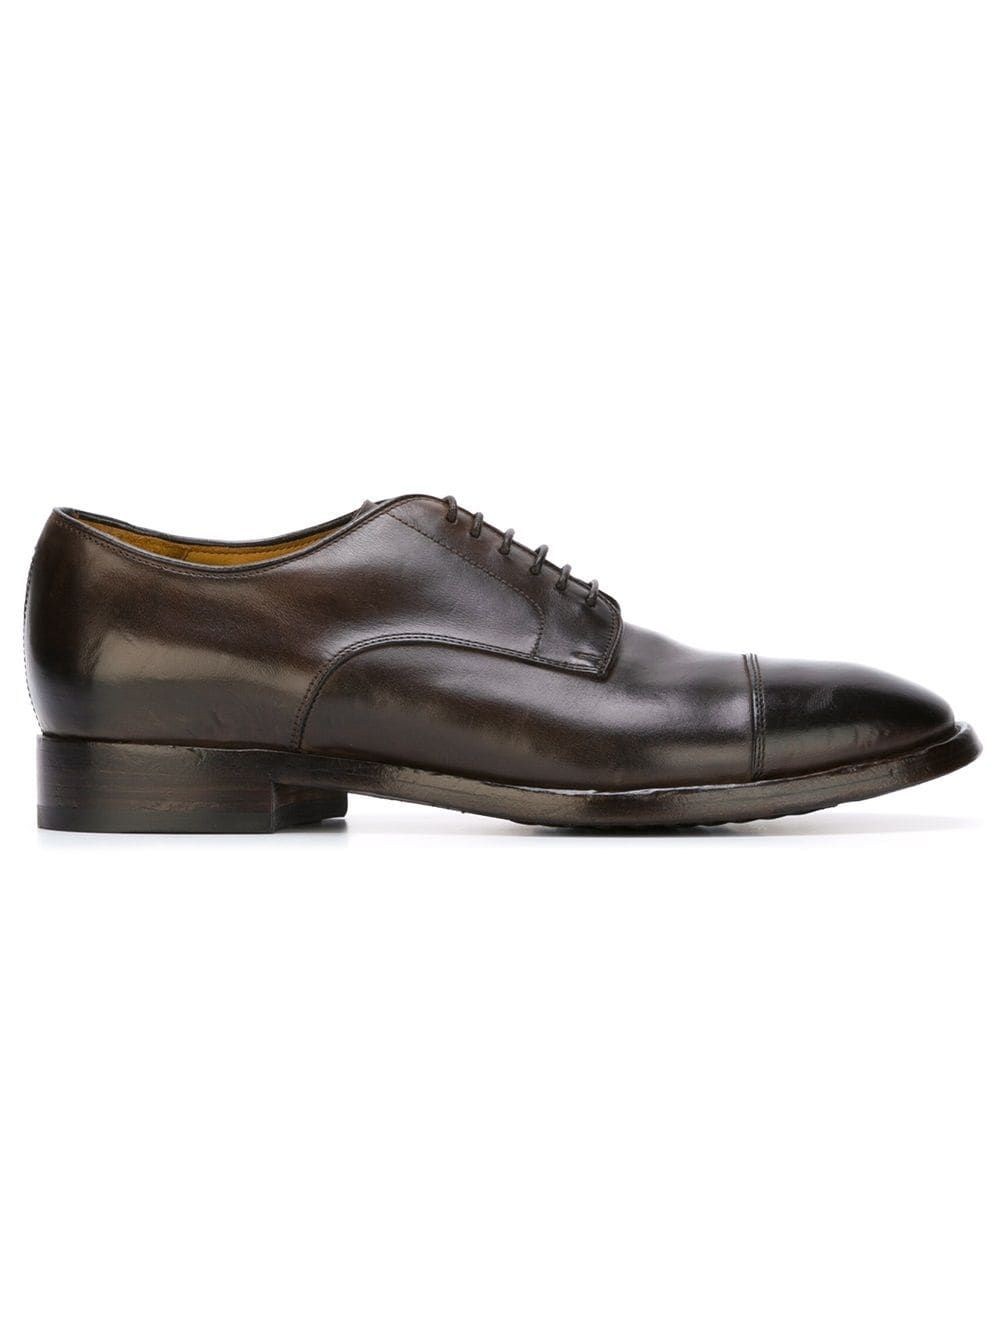 ef6c2ac5 Officine Creative Oxford shoes - Brown in 2019 | Products | Oxford ...